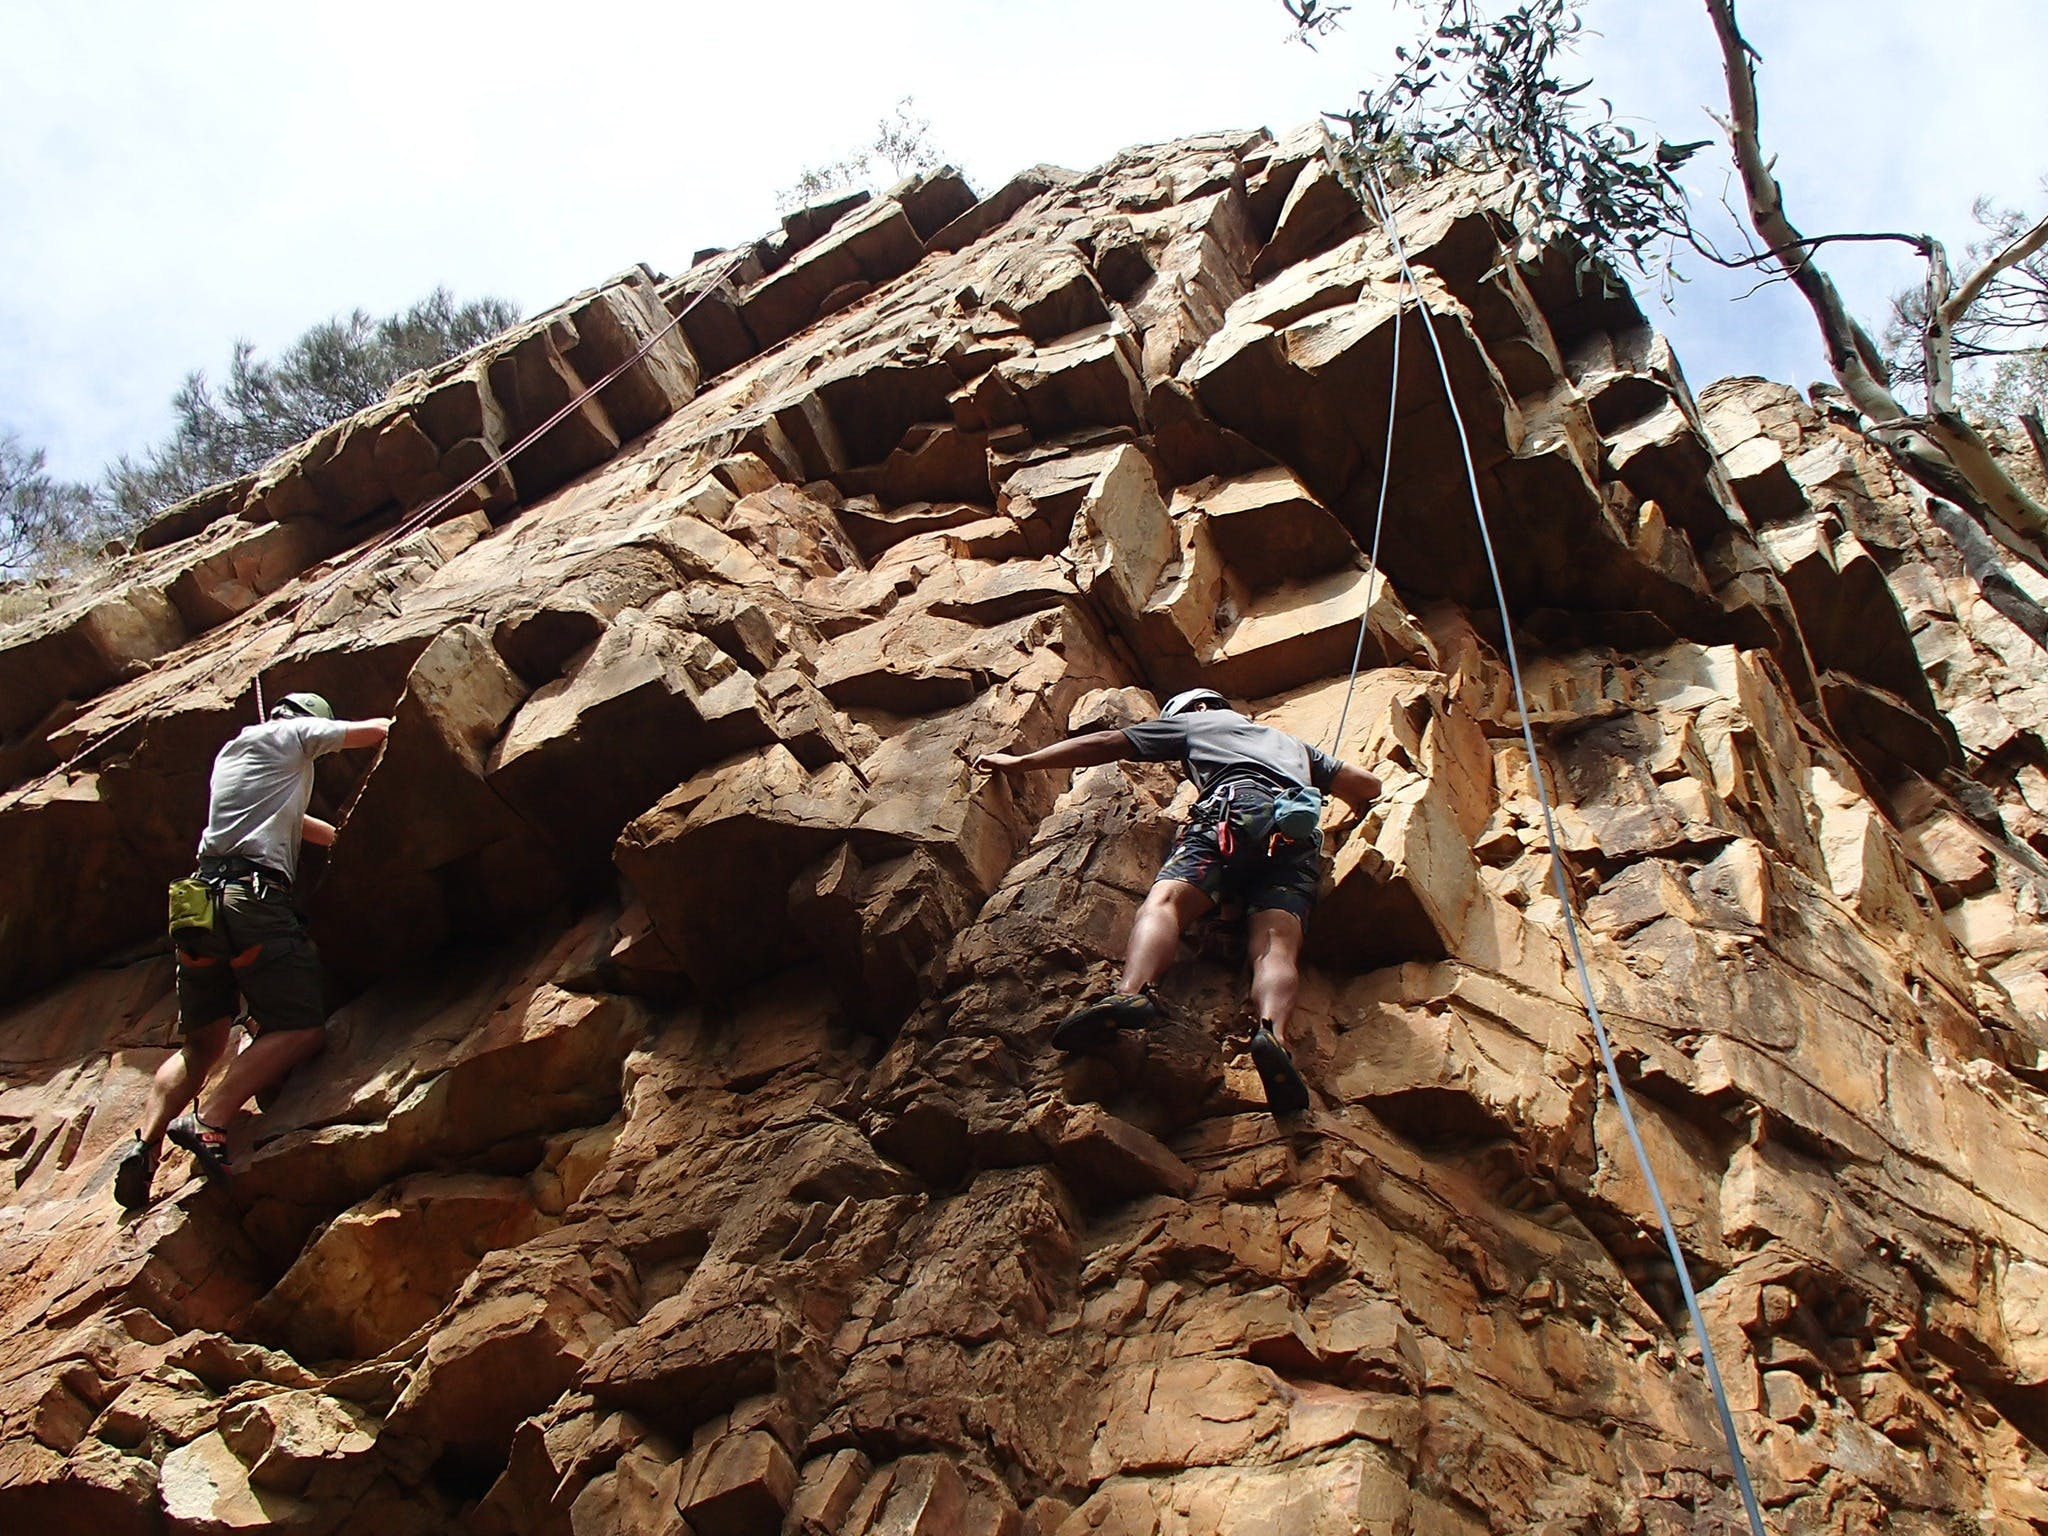 Rock Climbing in Morialta - Accommodation Mt Buller